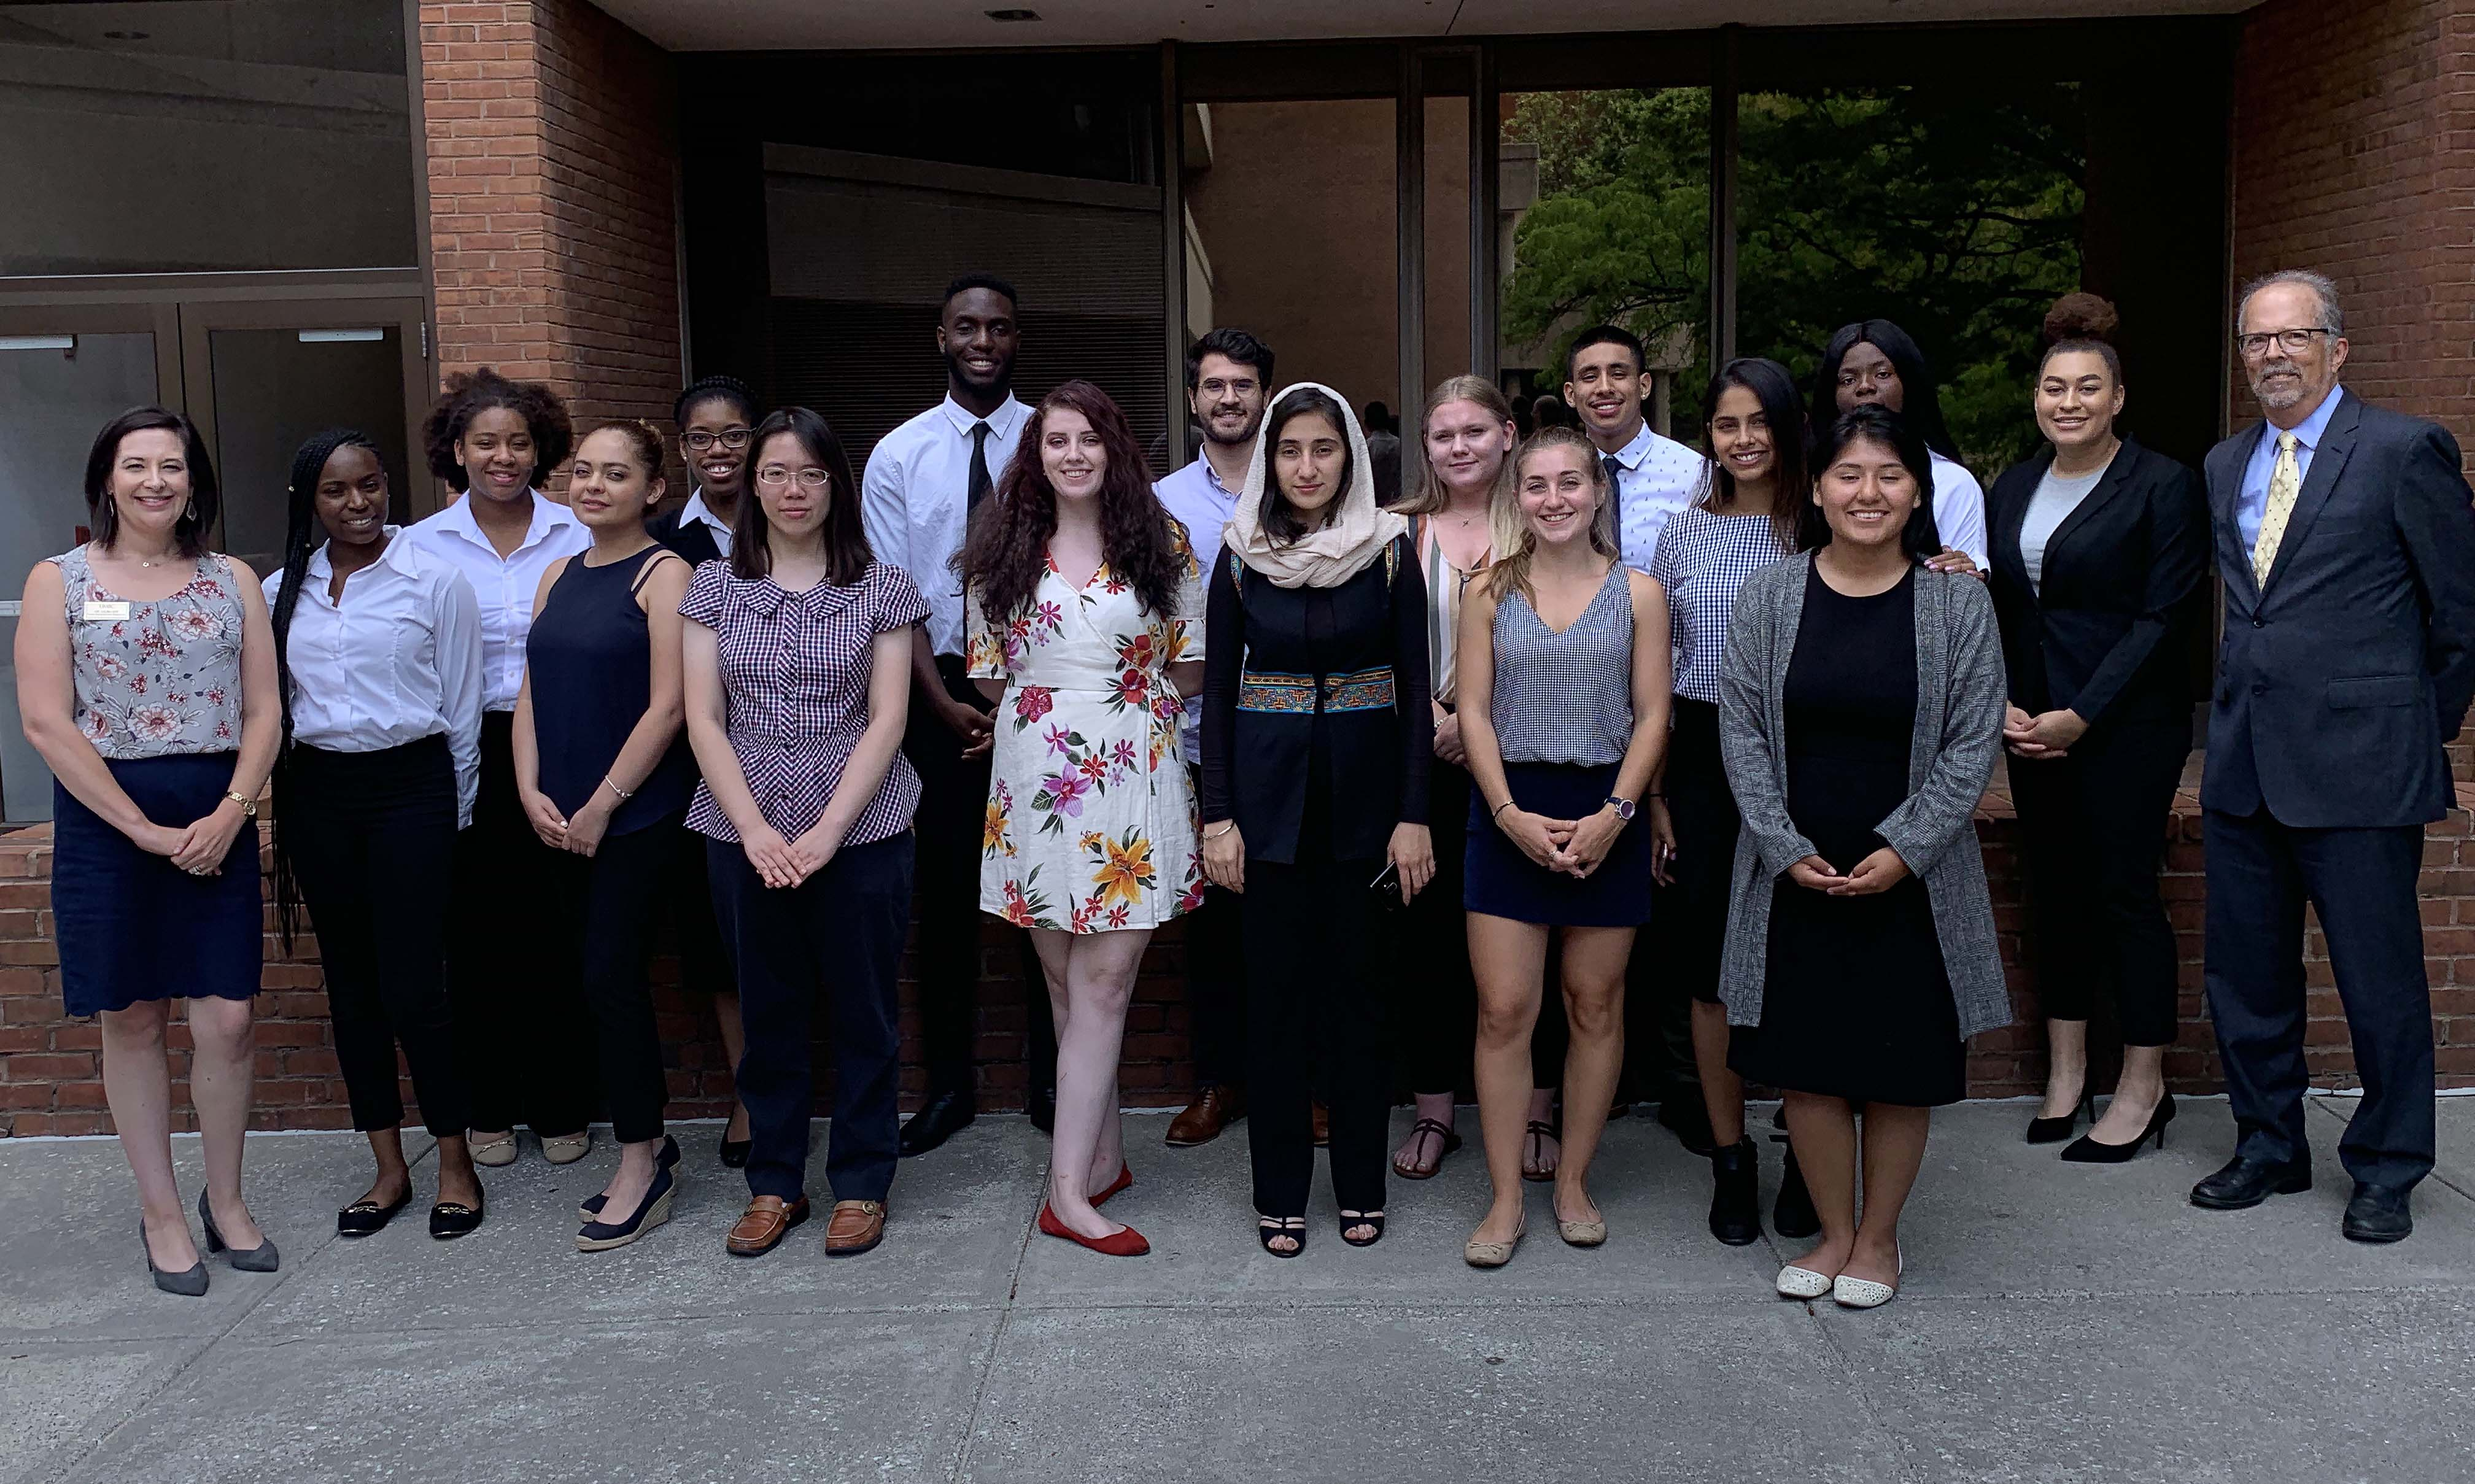 UMBC's 2019 BUILD a Bridge to STEM interns pose with two of their mentors, Laura Ott, Ph.D., and Phil Farabaugh, Ph.D.